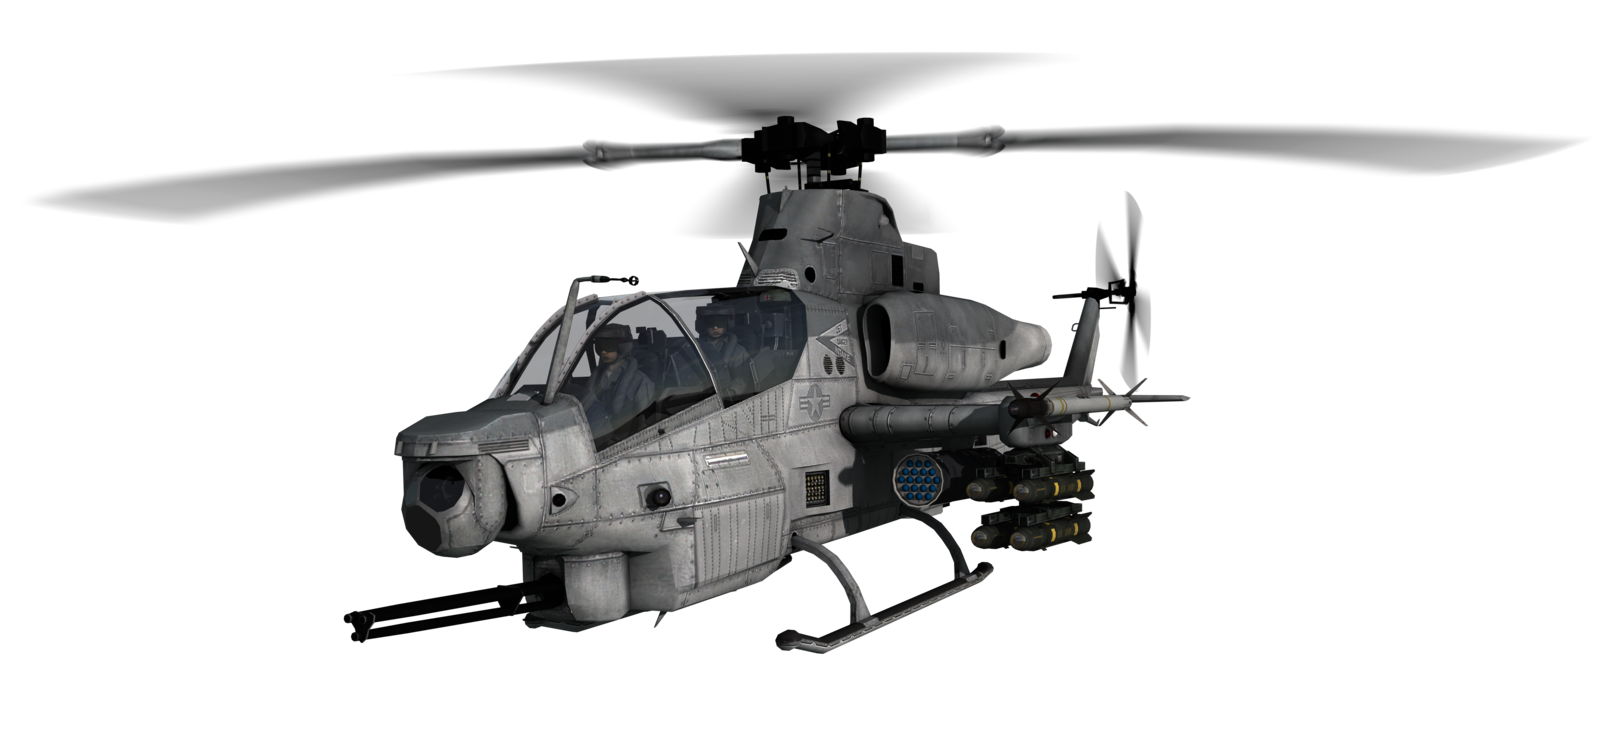 Helicopters Png & Free Helicopters.png Transparent Images #2266.